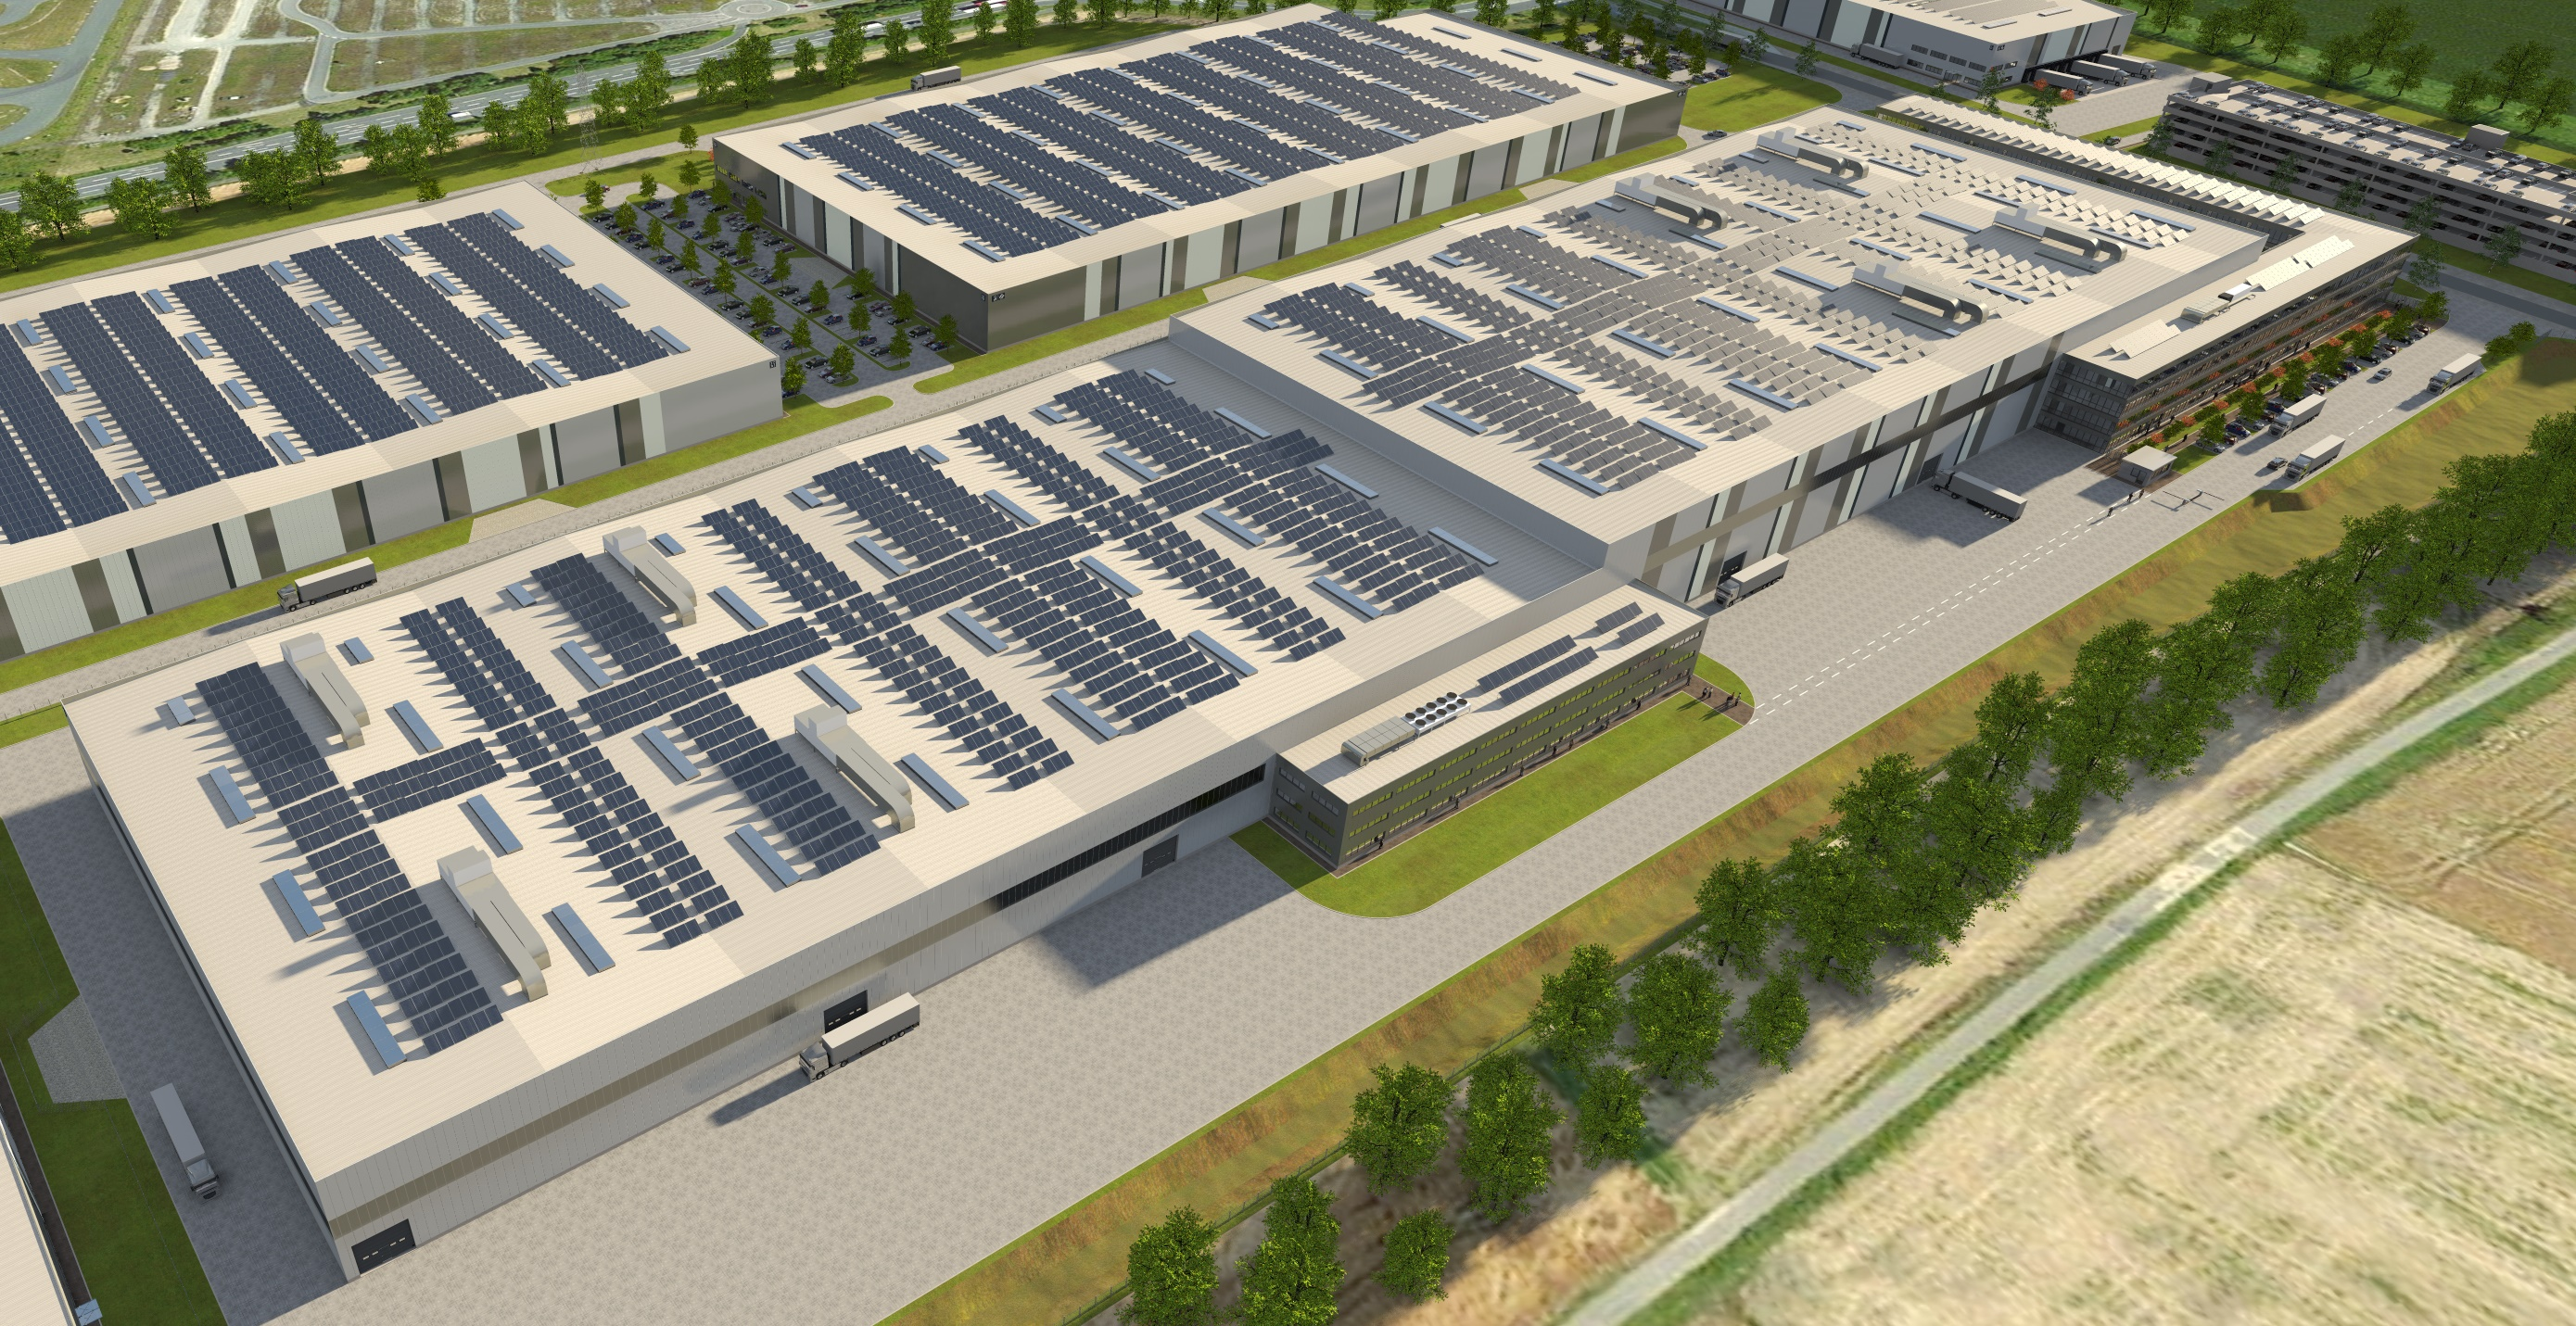 KraussMaffei Berstorff is planning a 38,000 m<sup>2</sup> plant in Hanover-Laatzen for 750 employees (Source: KraussMaffei Berstorff)